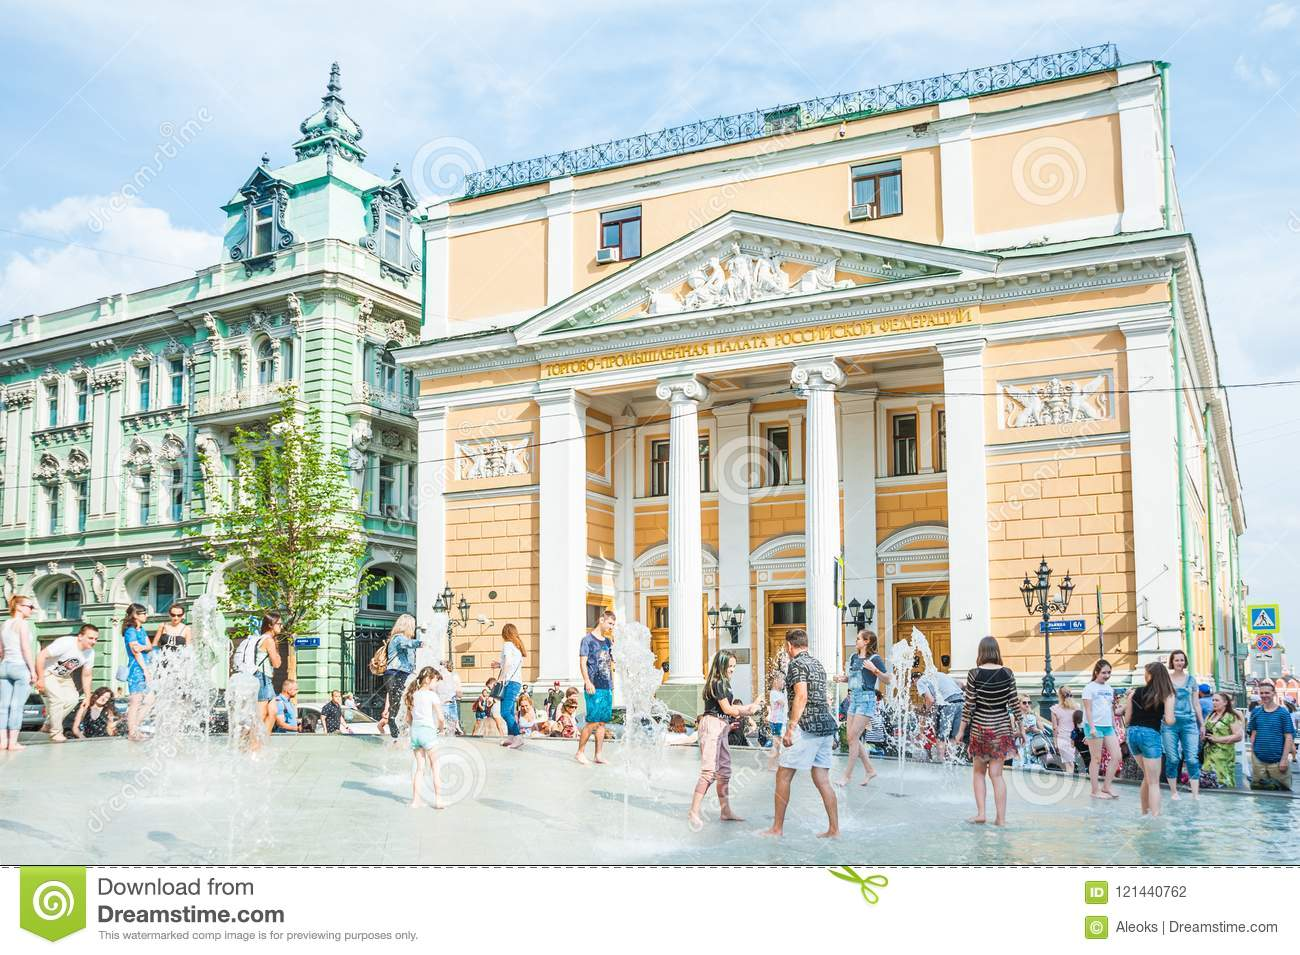 Birzhevaya square. The Chamber of Commerce and Industry of the Russian Federation. People splash in the fountain in hot weather